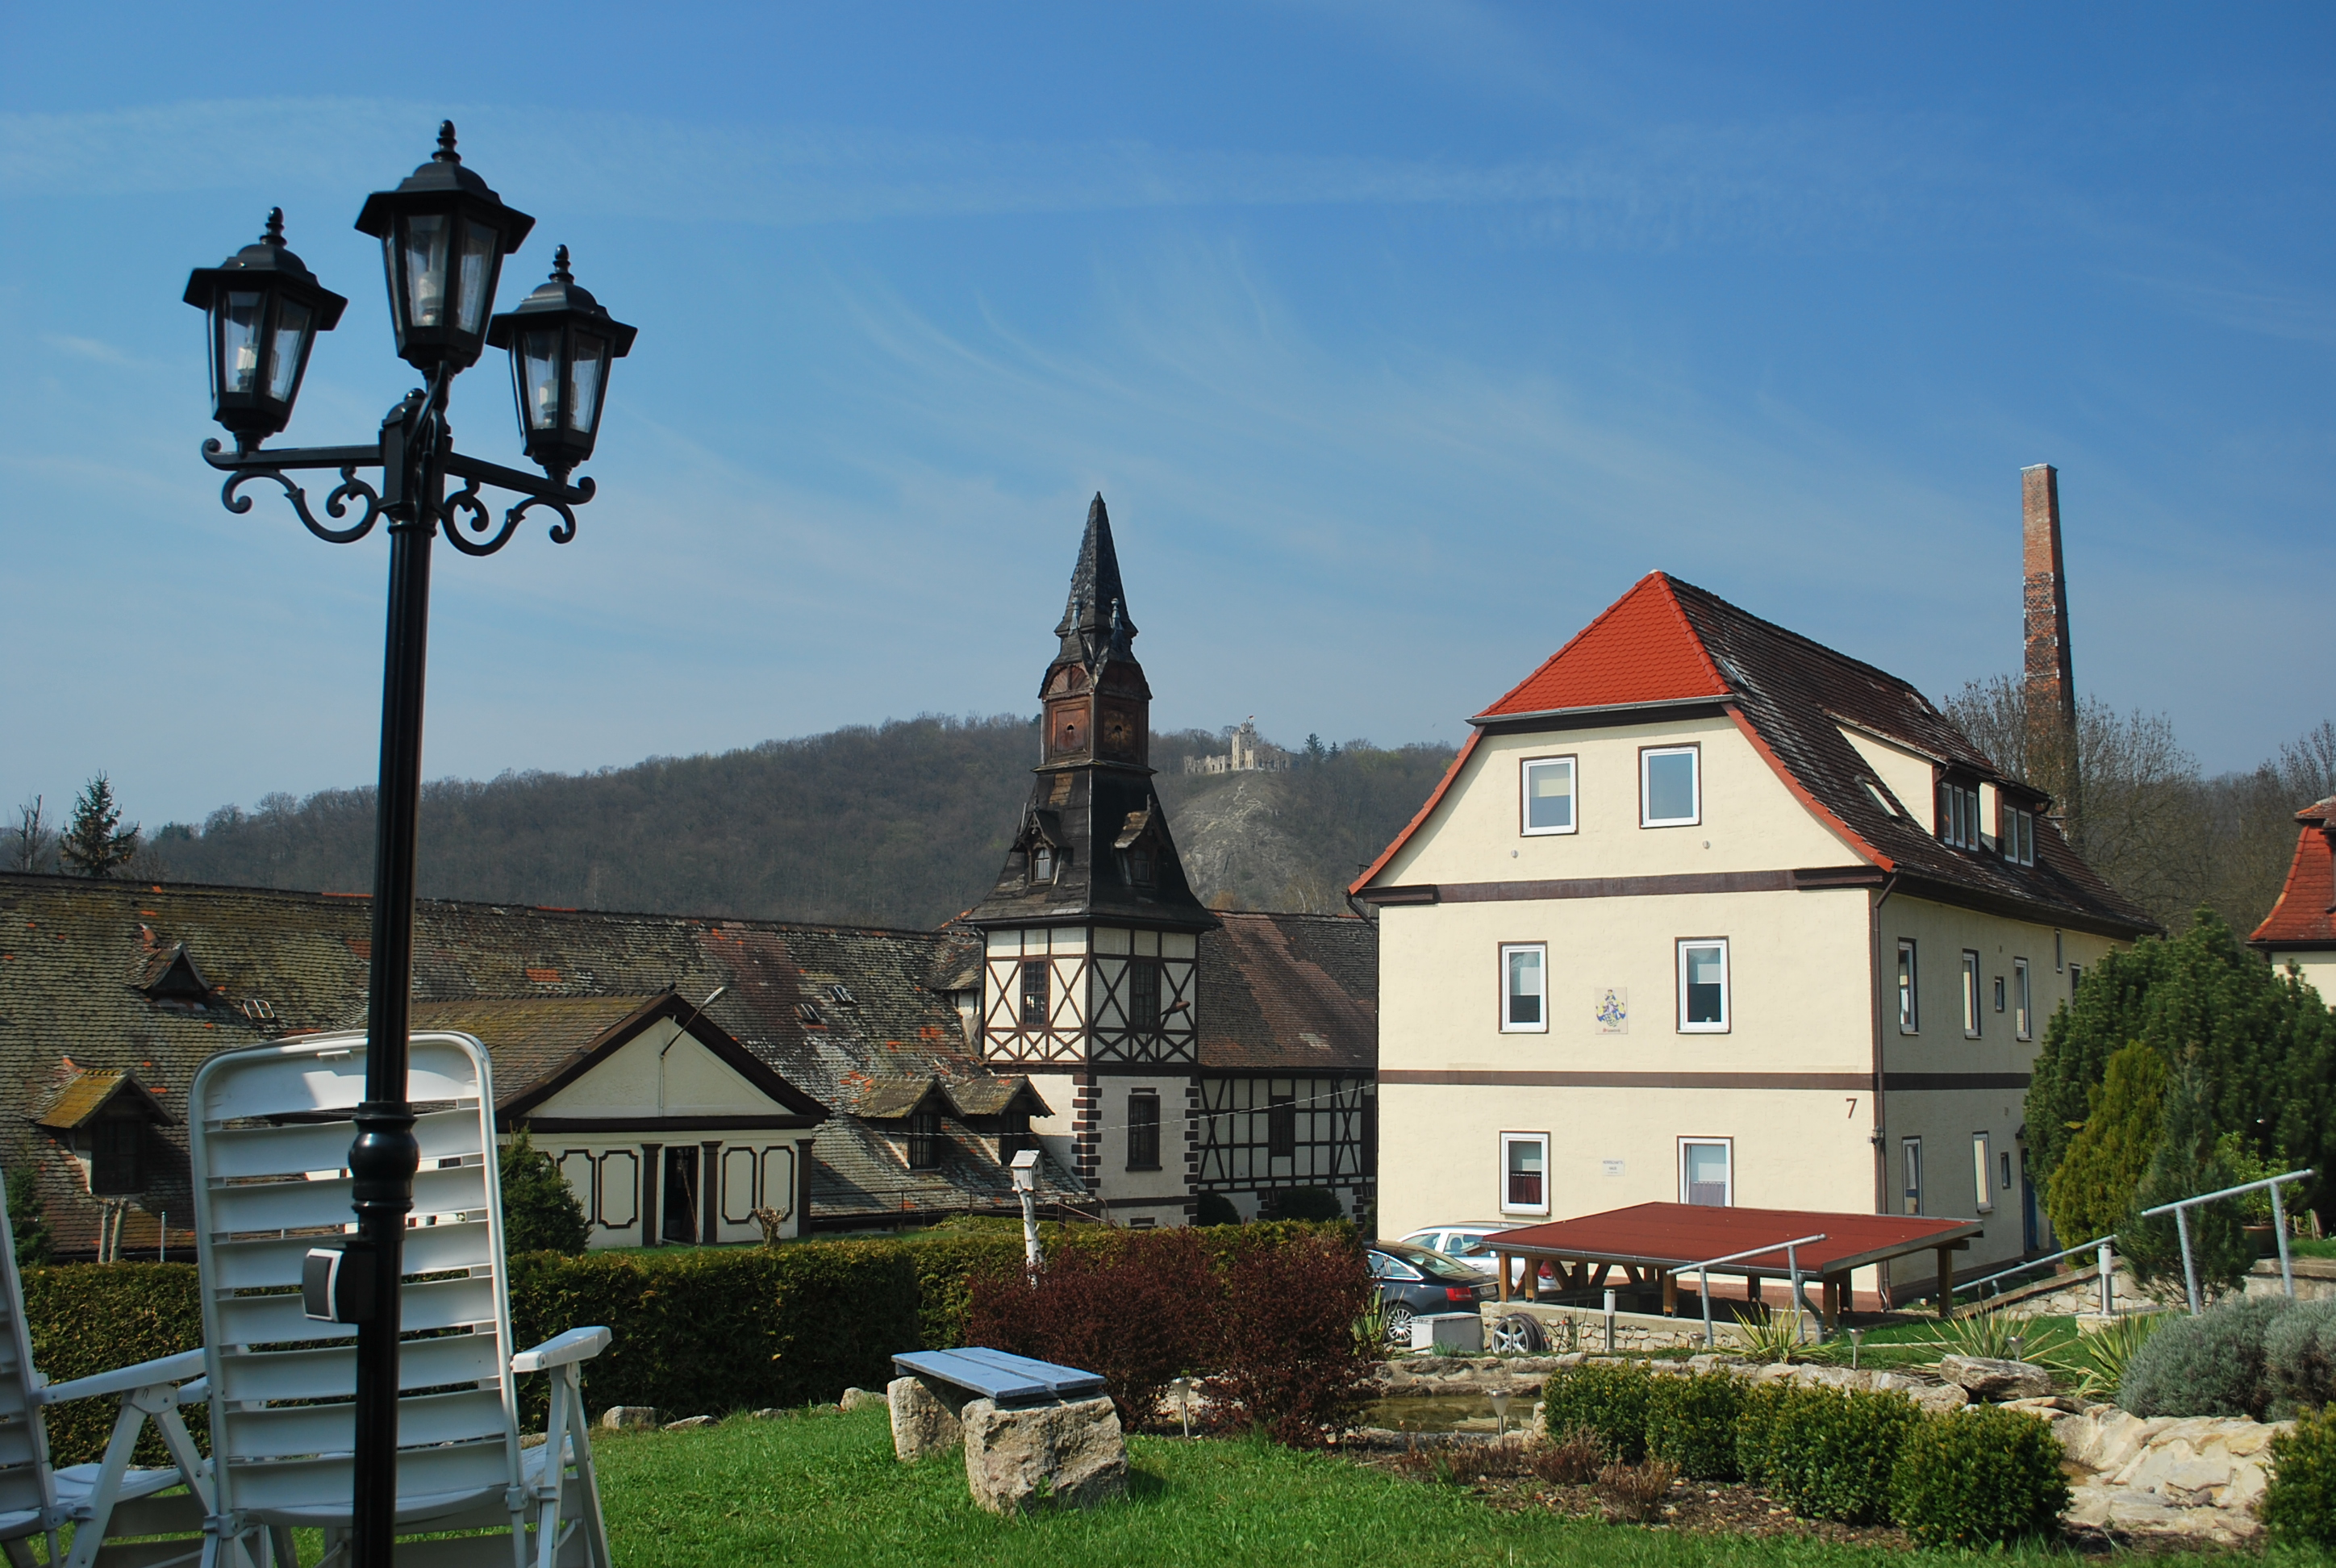 Holiday apartment Seepferdchen (2 Pers- 20m2) (421799), Bad Sulza, Weimar Country, Thuringia, Germany, picture 22